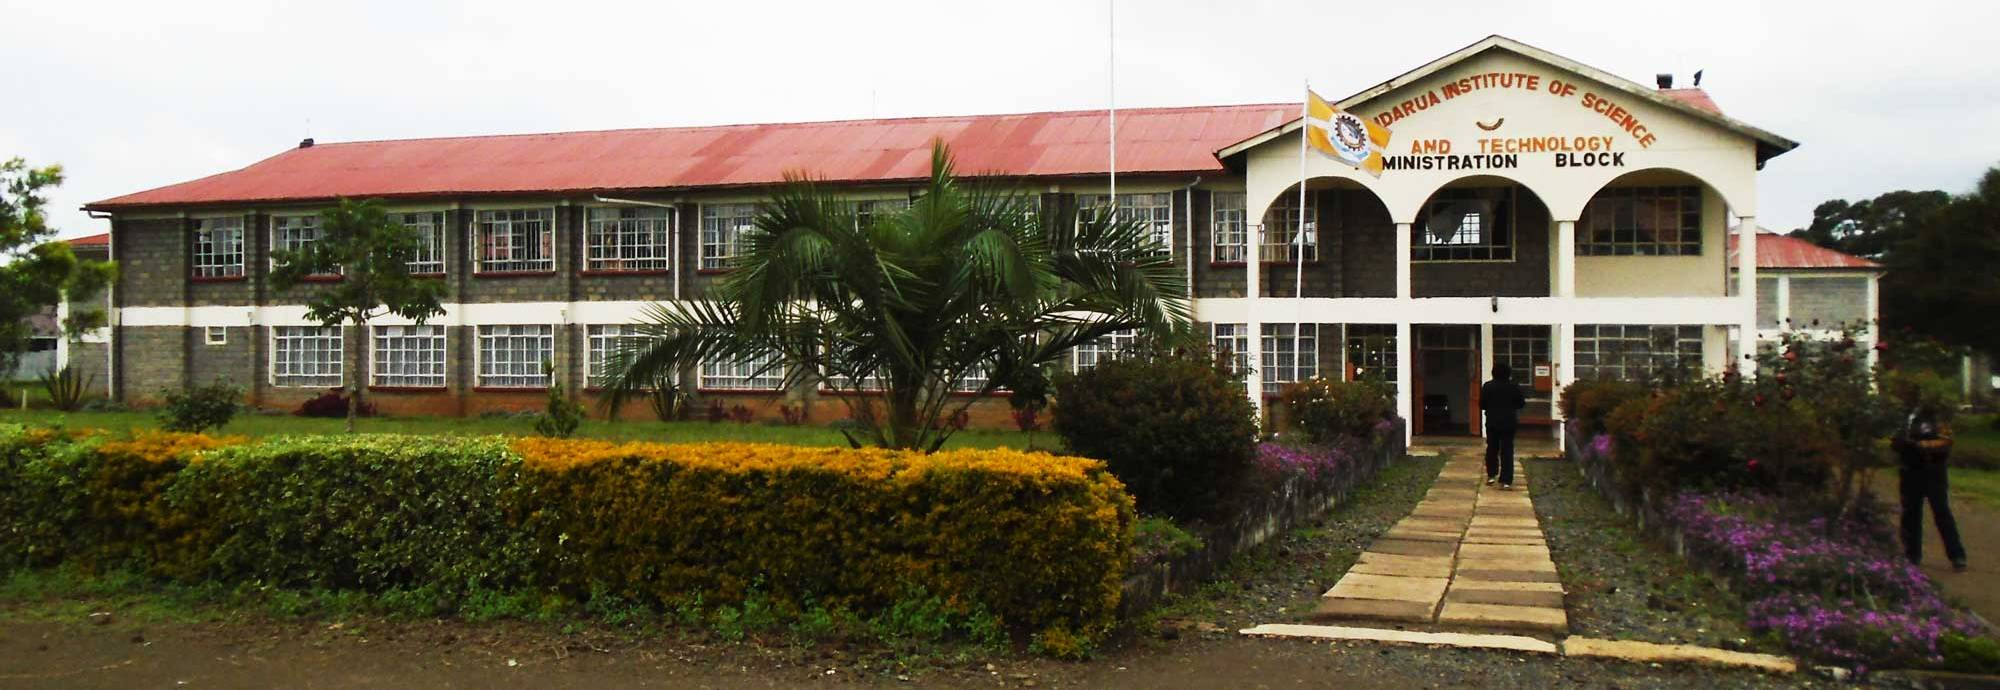 Nyandarua-Institute-of-Science-and-Technology-Administration Block